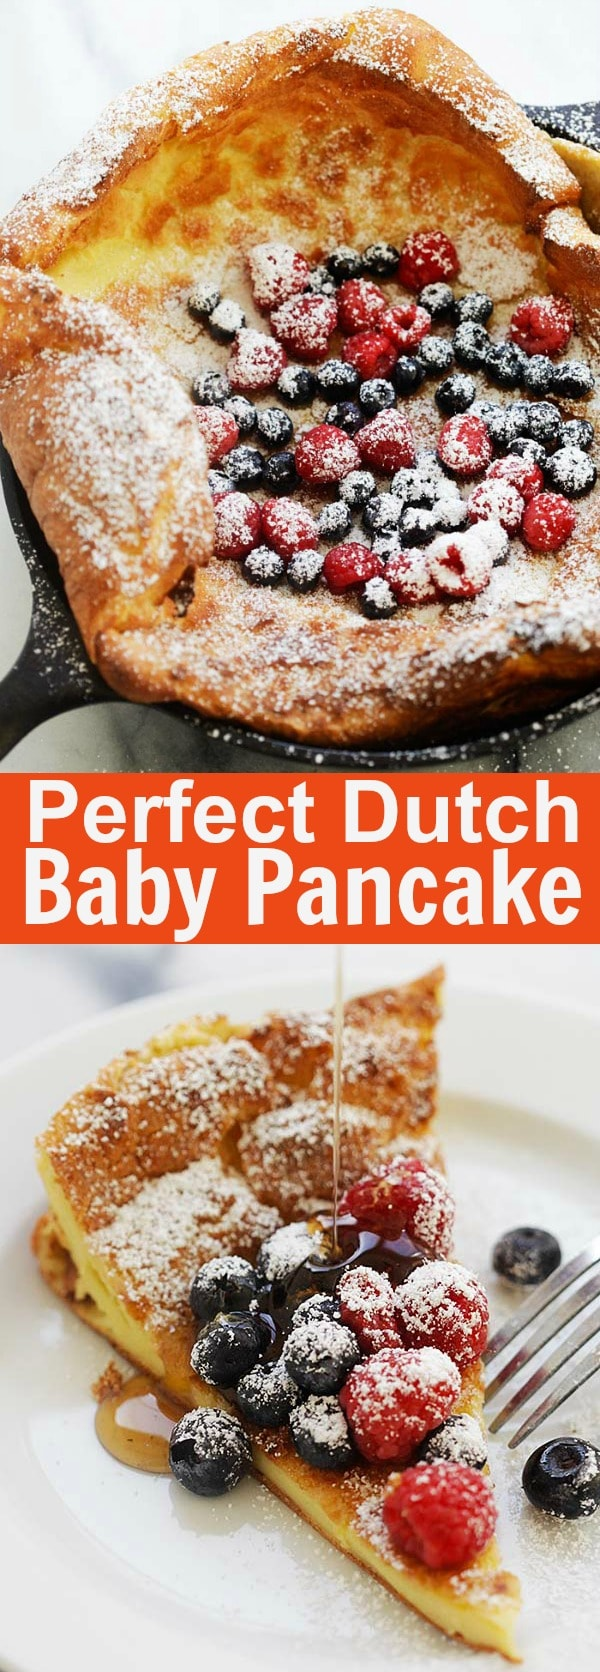 Dutch Baby Pancake - easy and fail-proof Dutch Baby Pancake recipe that calls for only 5 basic ingredients and takes only 5 minutes active time to prep | rasamalaysia.com